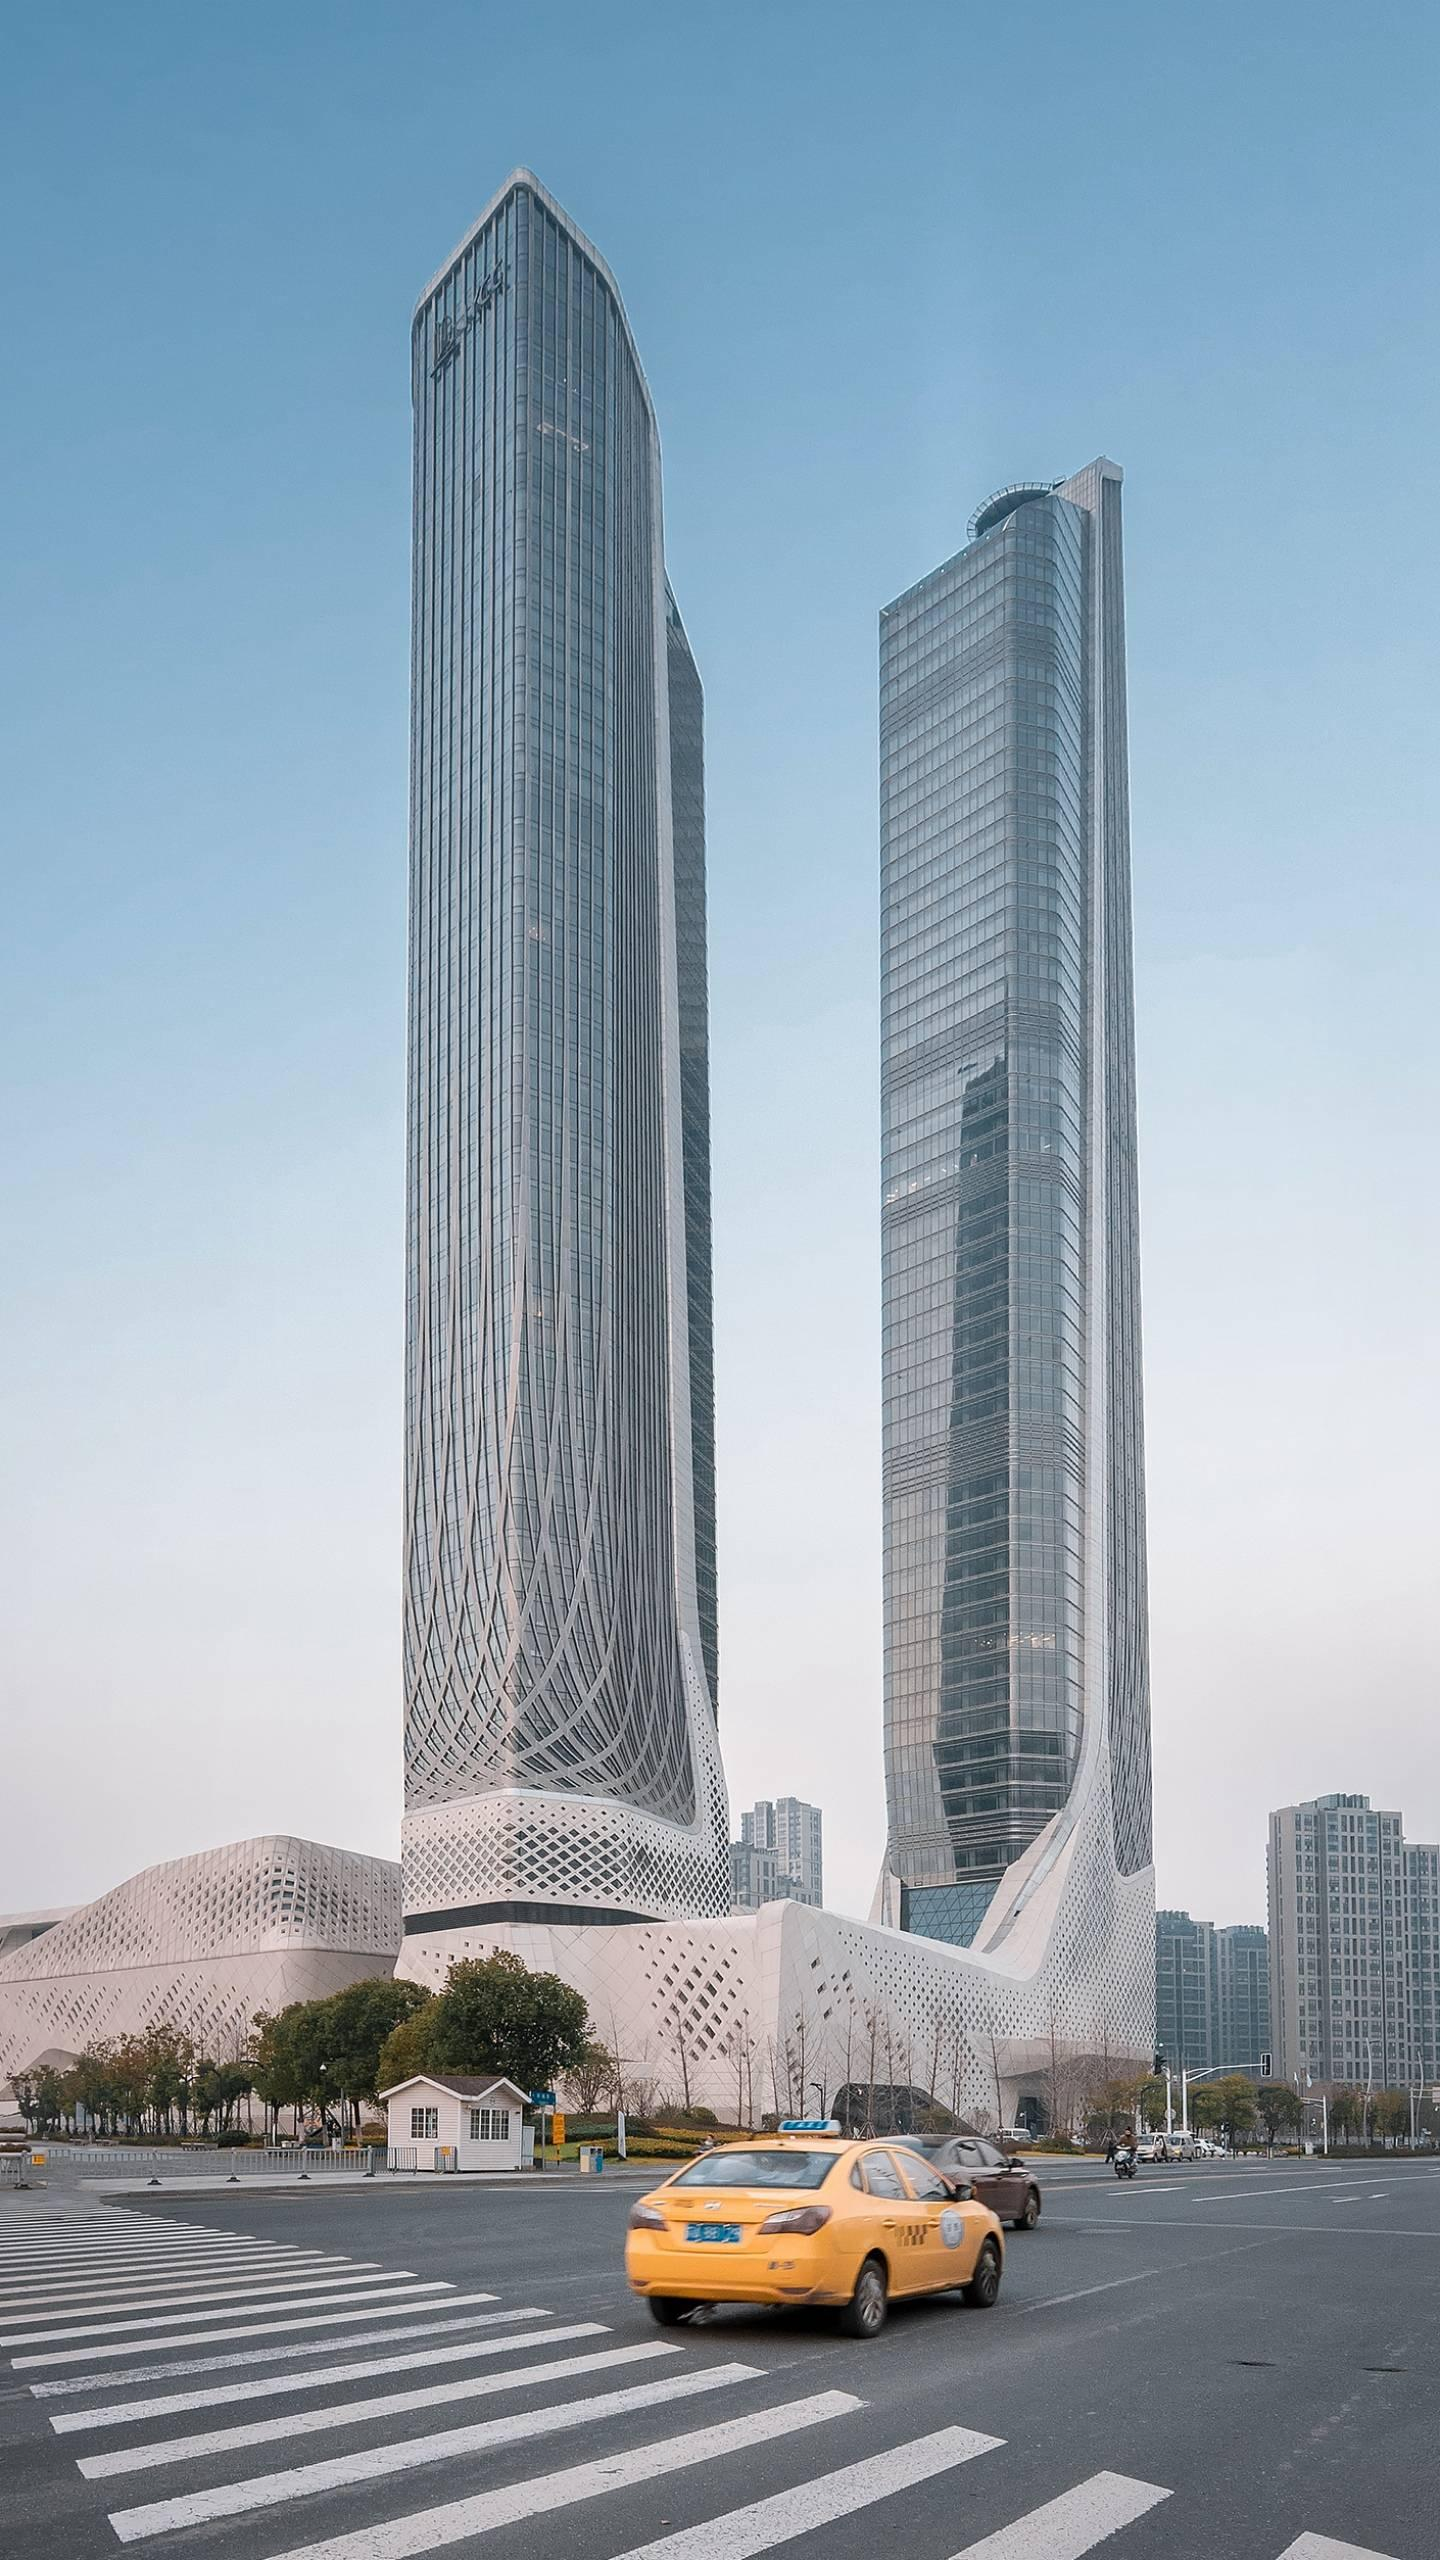 China's twin towers. Speaking of the twin towers may think of the Kuala Lumpur Twin Towers, but in fact there are many twin tower buildings in China.